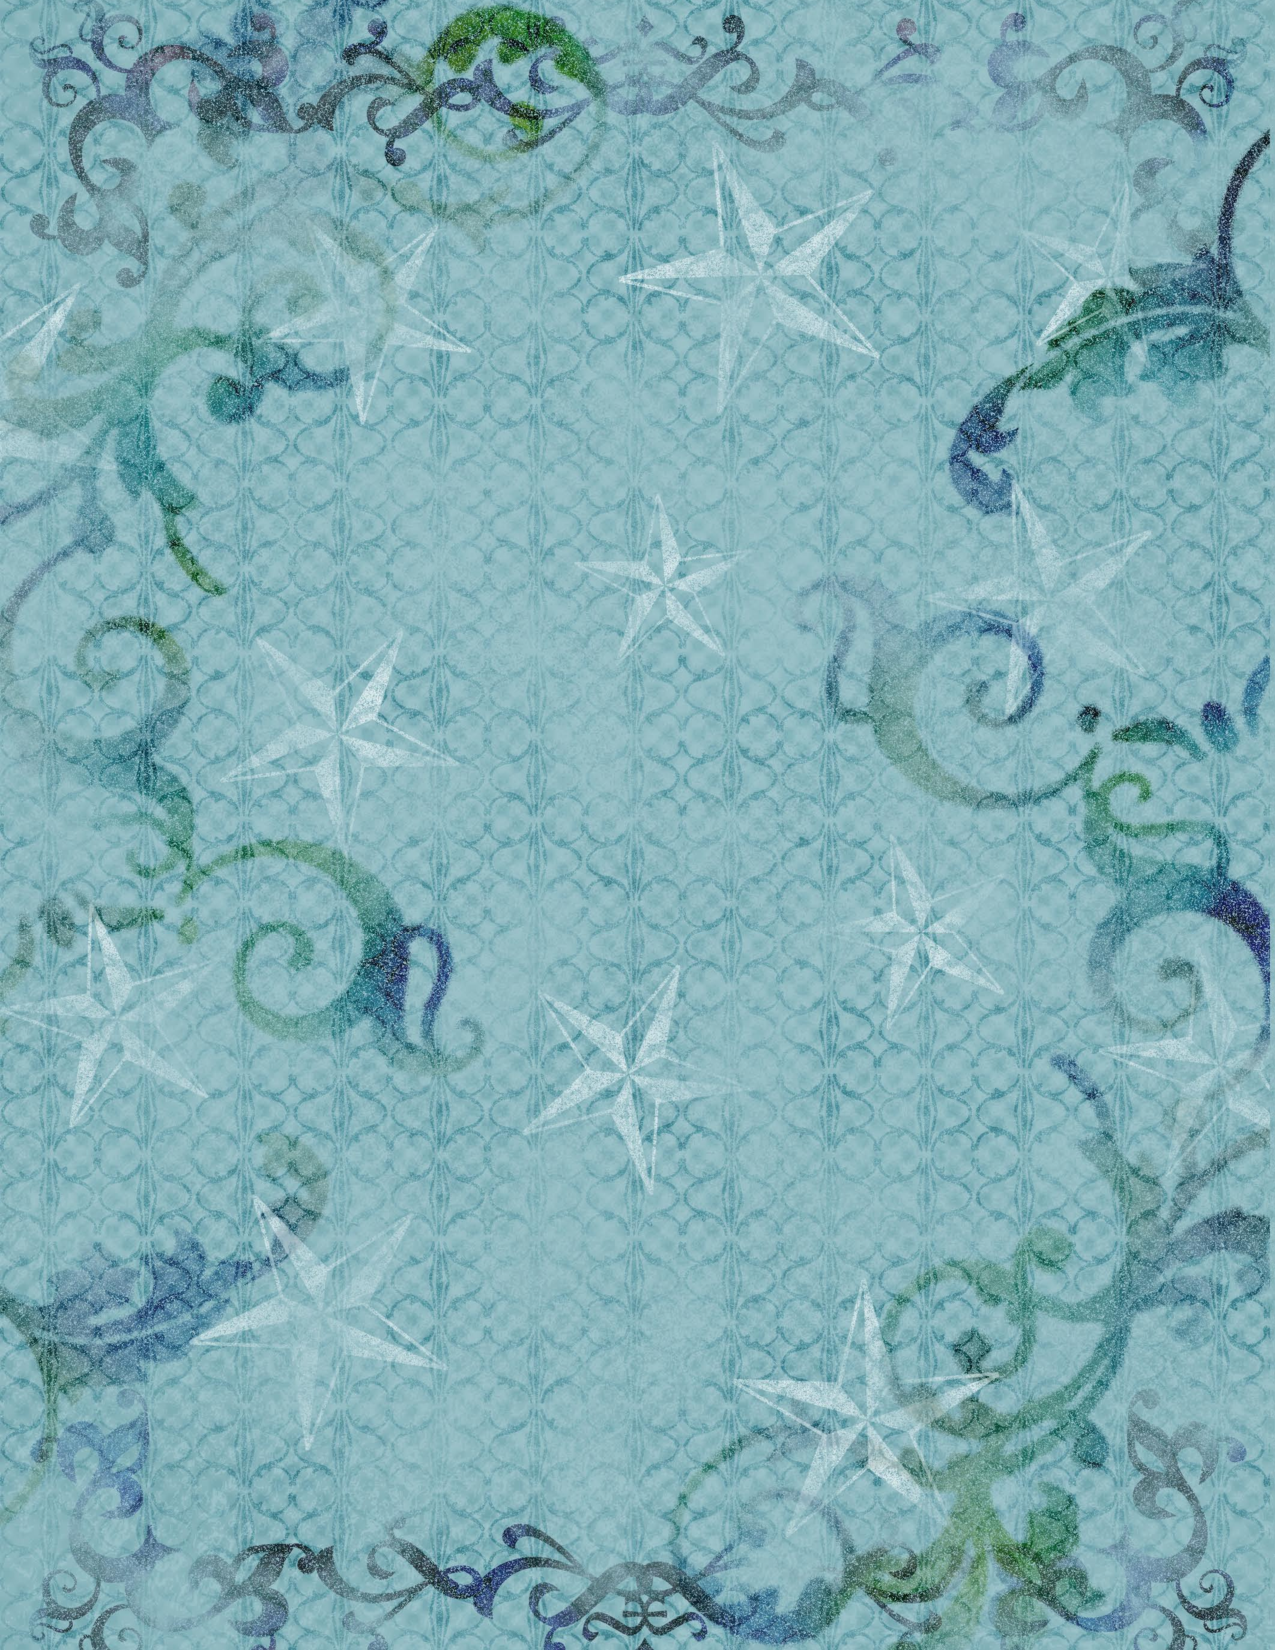 blue swirl printable background backgrounds wallpapers